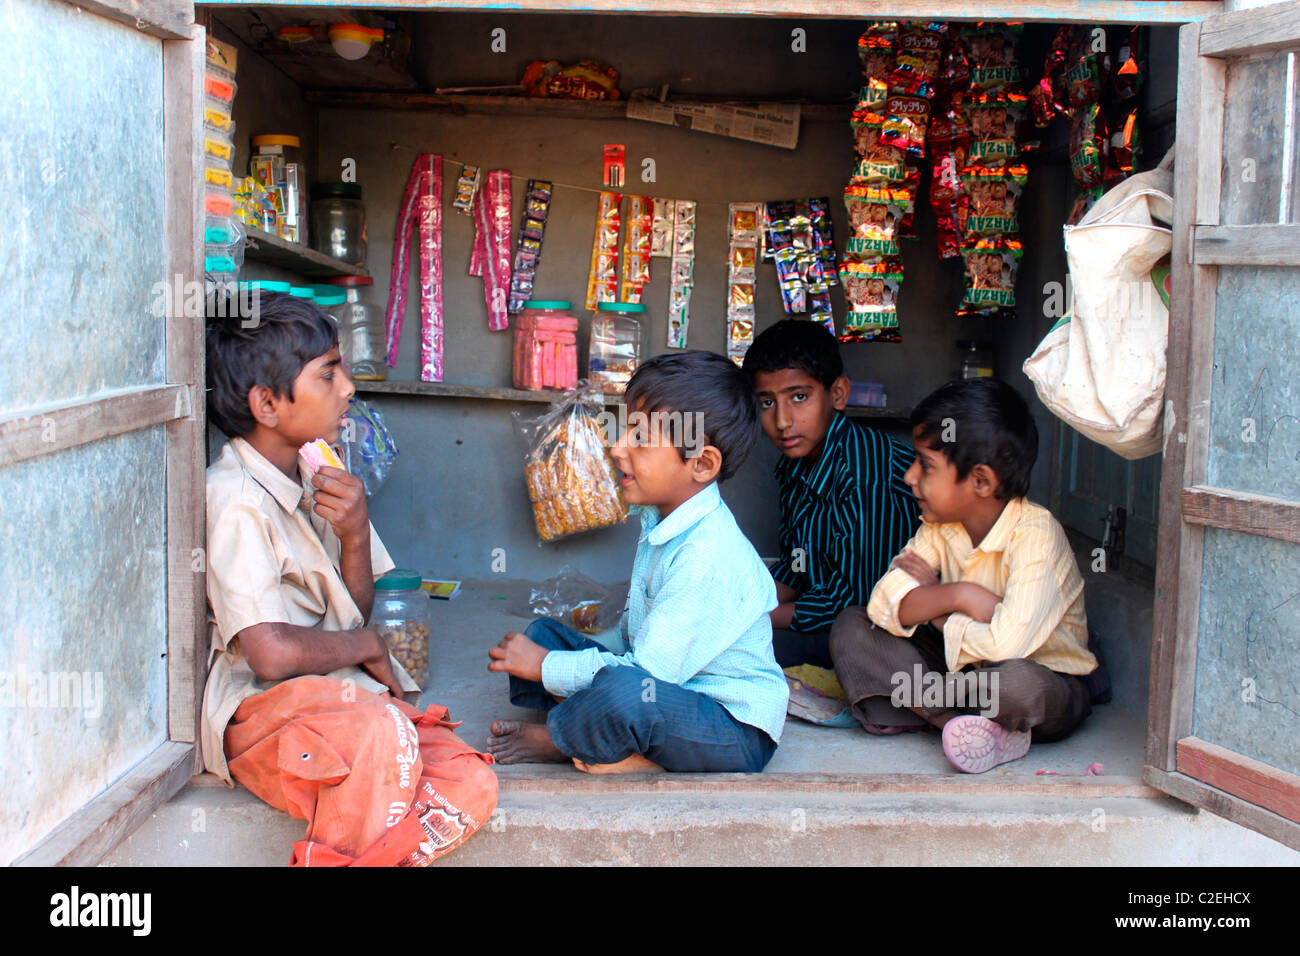 Rural children talking in a stationary shop in Rural Gujarat, India - Stock Image